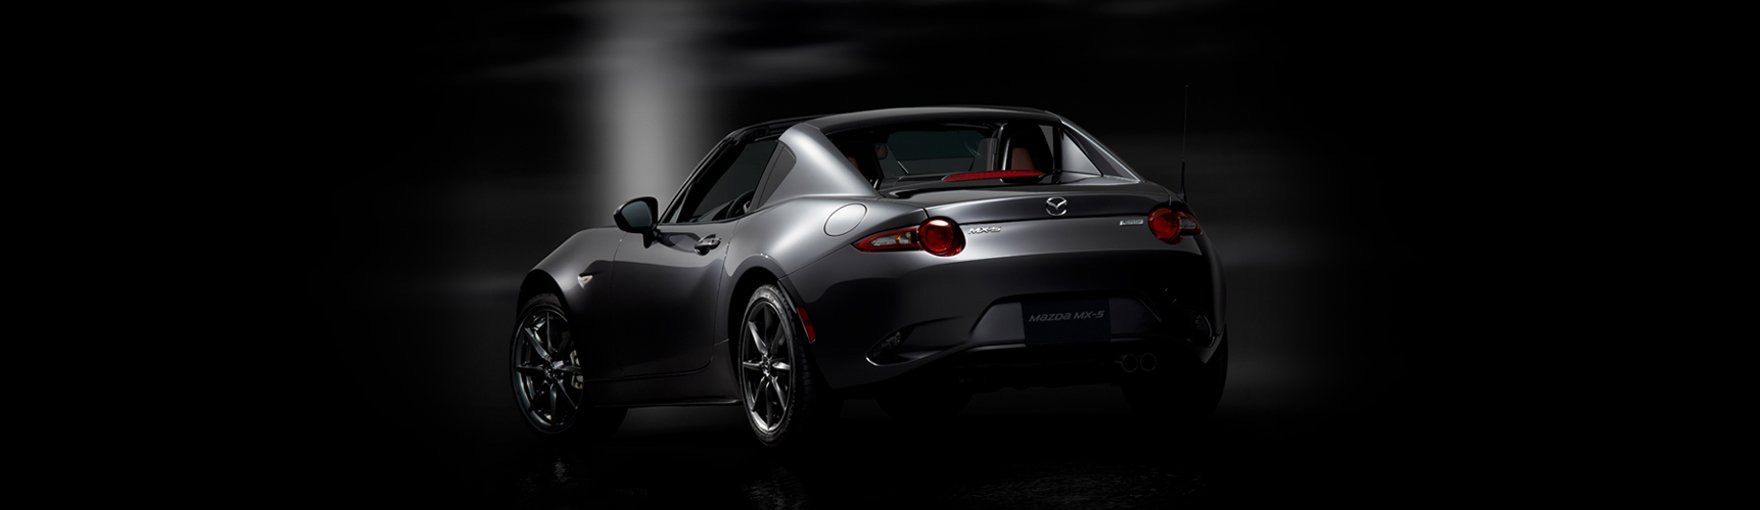 Rear view of a Mazda MX-5